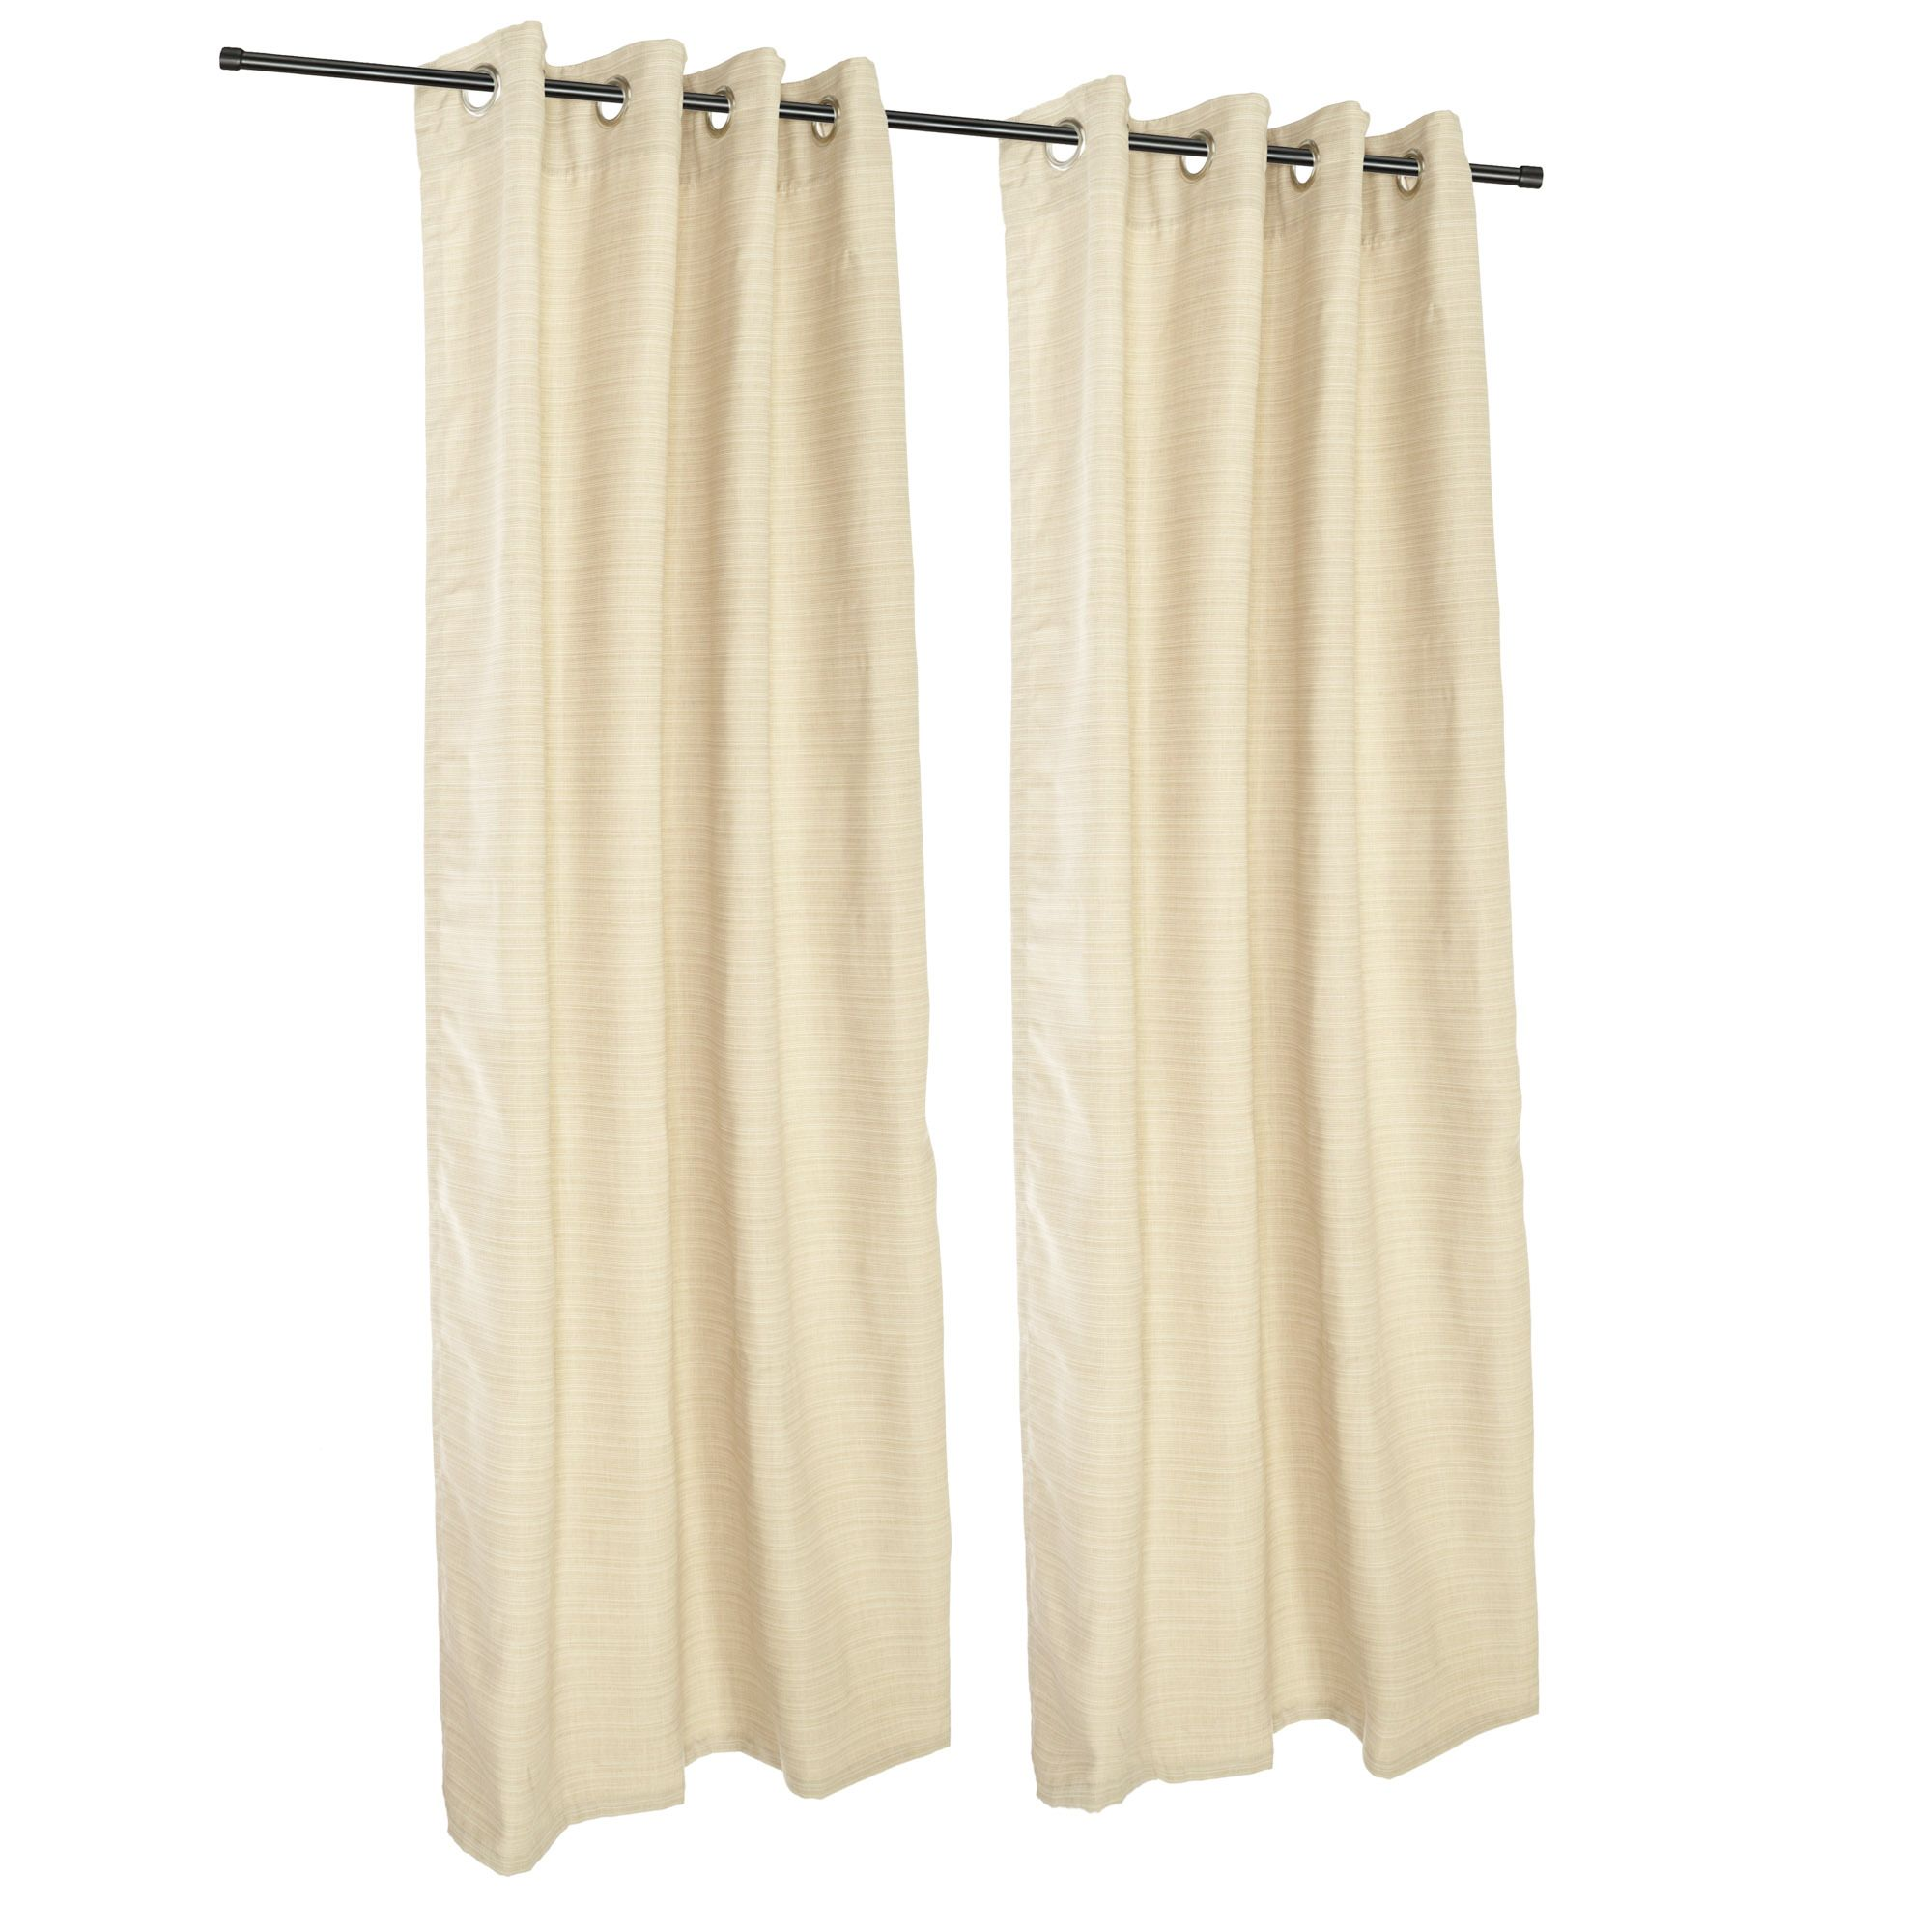 Sunbrella Dupione Pearl Grommeted Outdoor Curtains